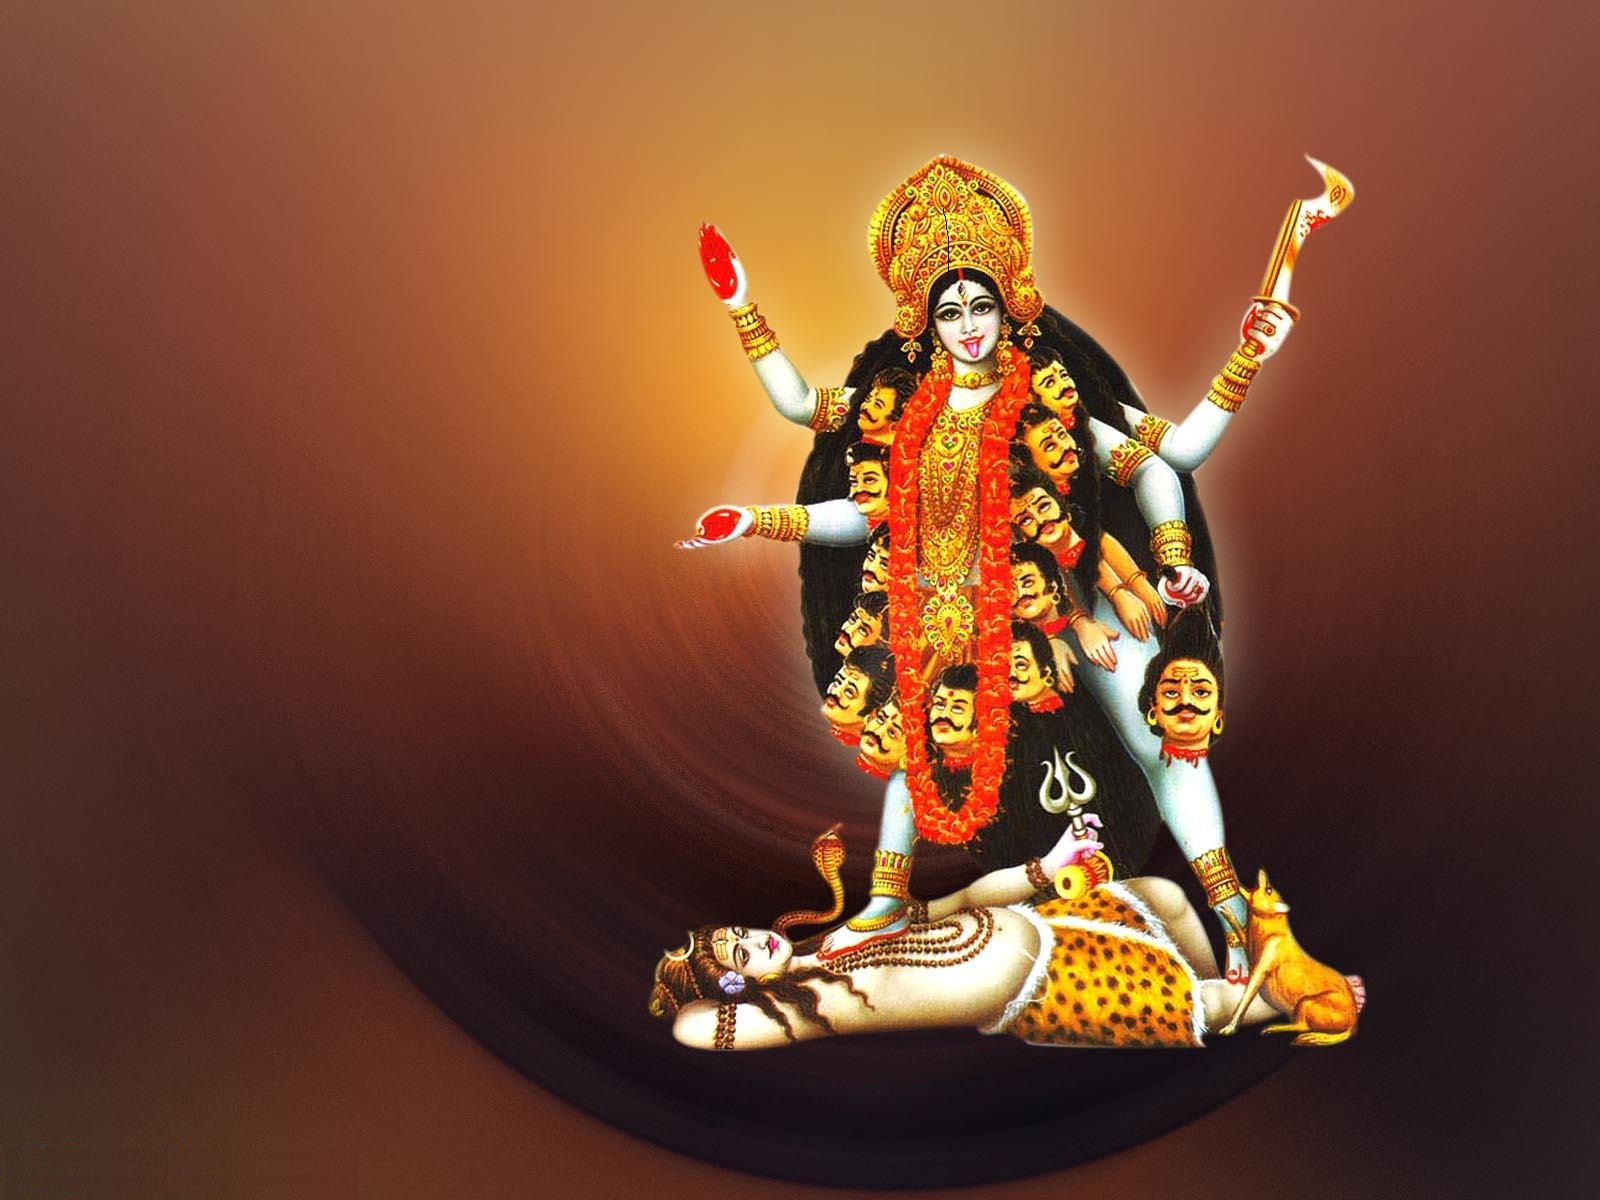 Happy Diwali Hd Wallpaper With Quotes Durga Puja Amp Navratri Hd Wallpapers Free Download Let Us